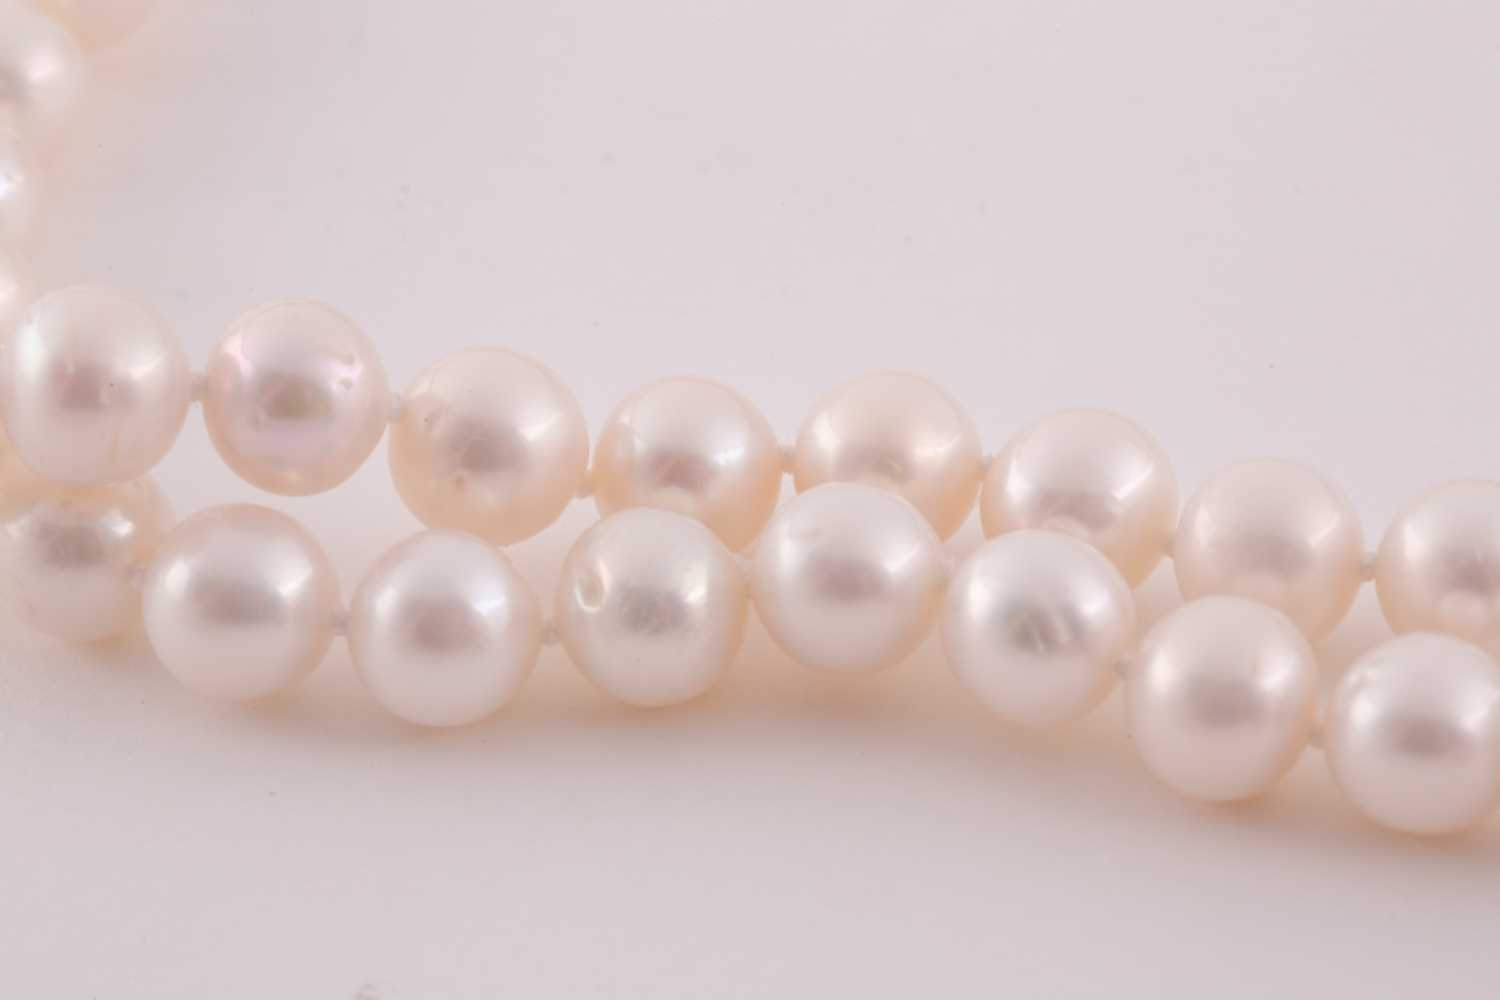 A cultured pearl necklace, comprised of freshwater pearls of approximately 8-9 mm diameter, the - Image 2 of 2